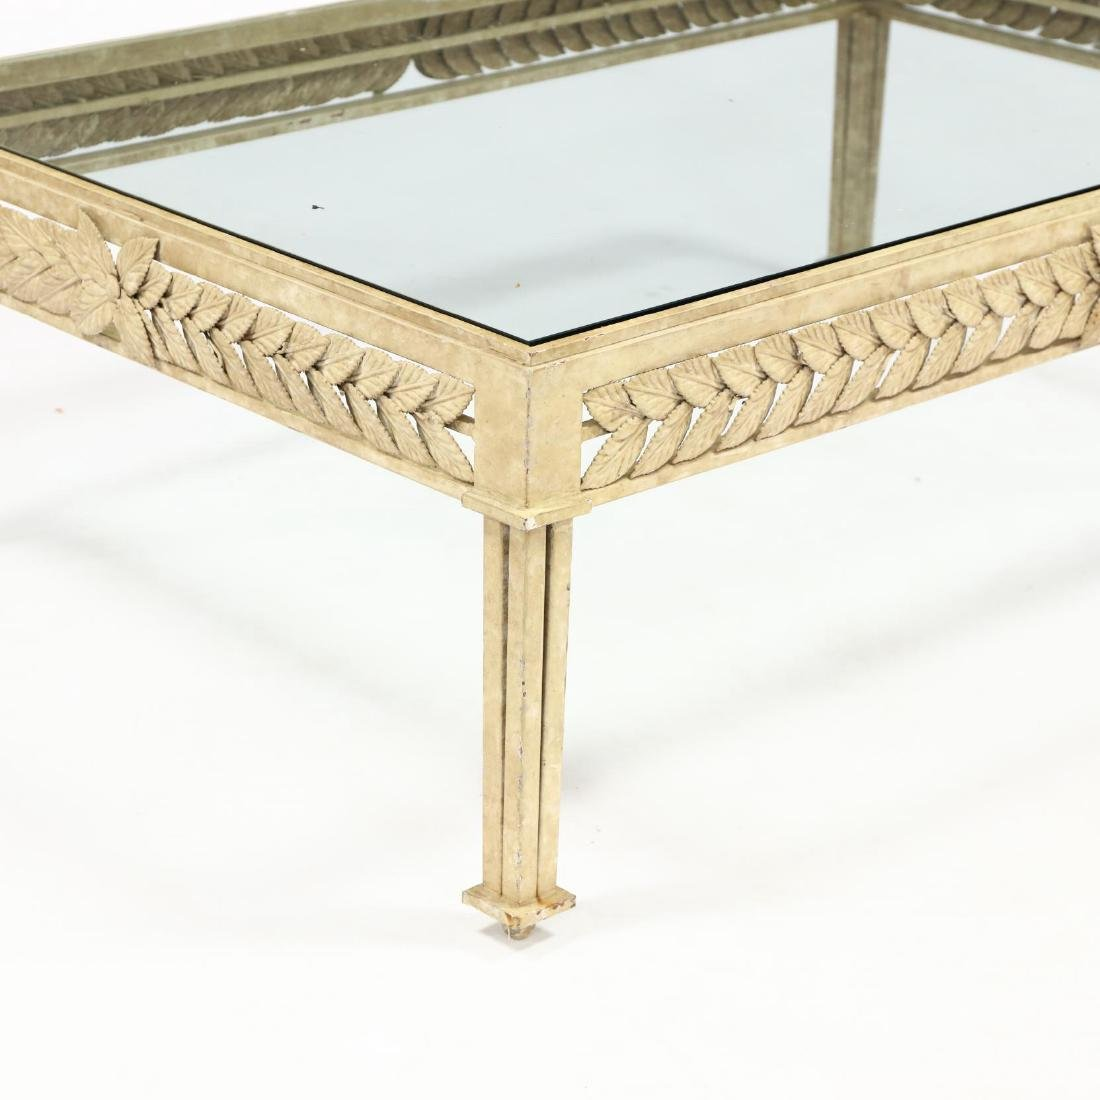 Neoclassical Style Iron and Glass Low Table - 2